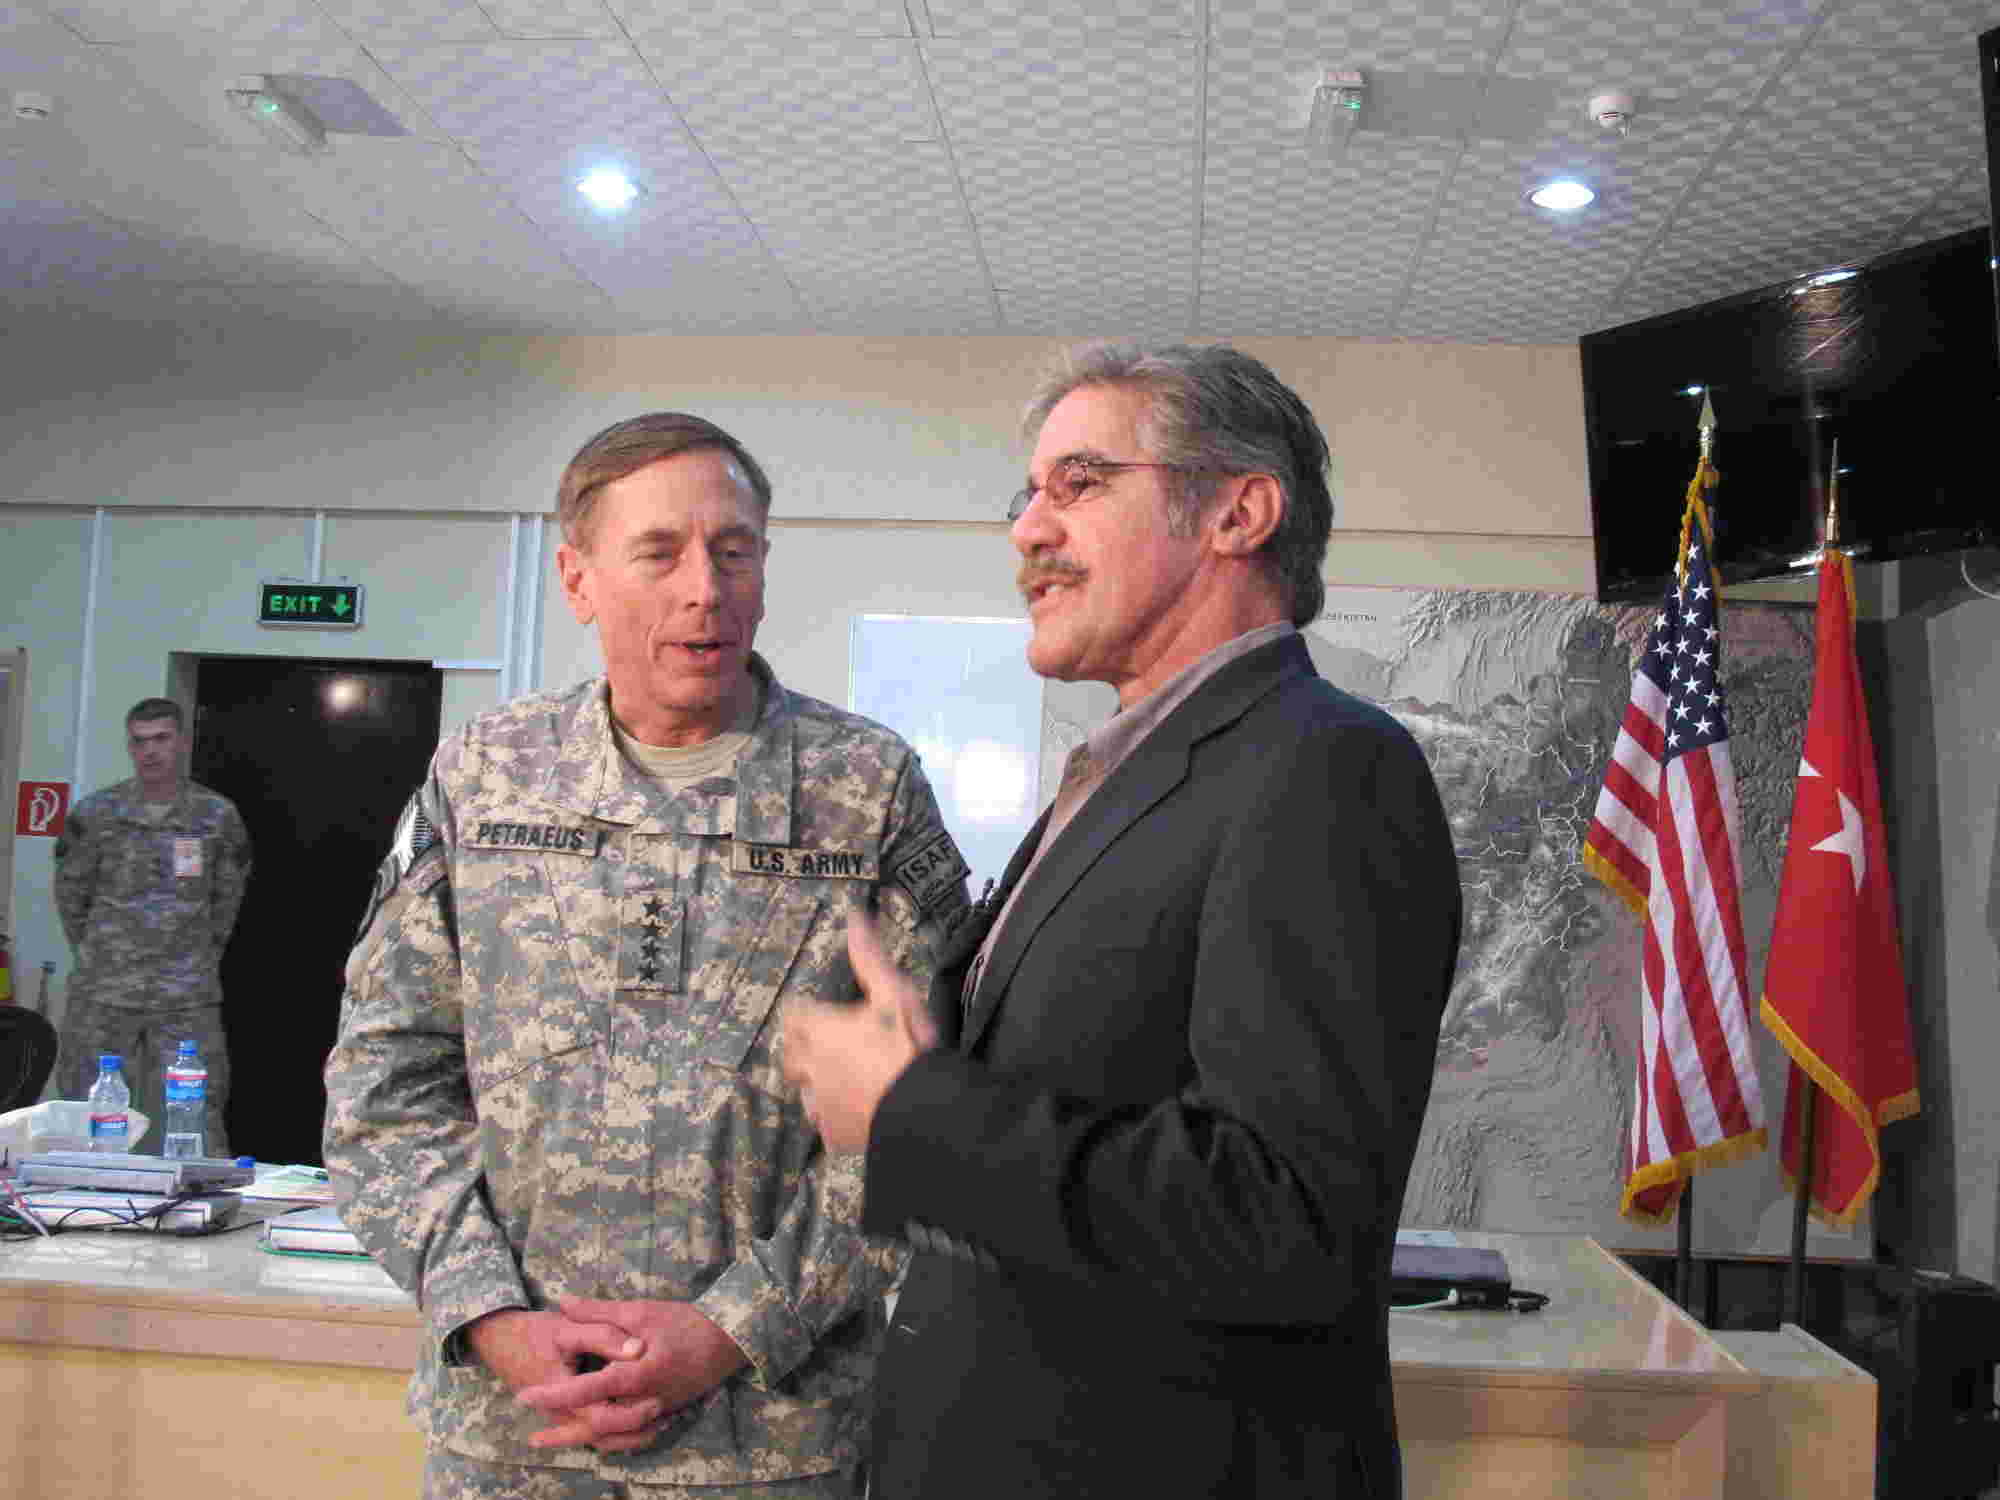 Geraldo stands with General David Petraeus